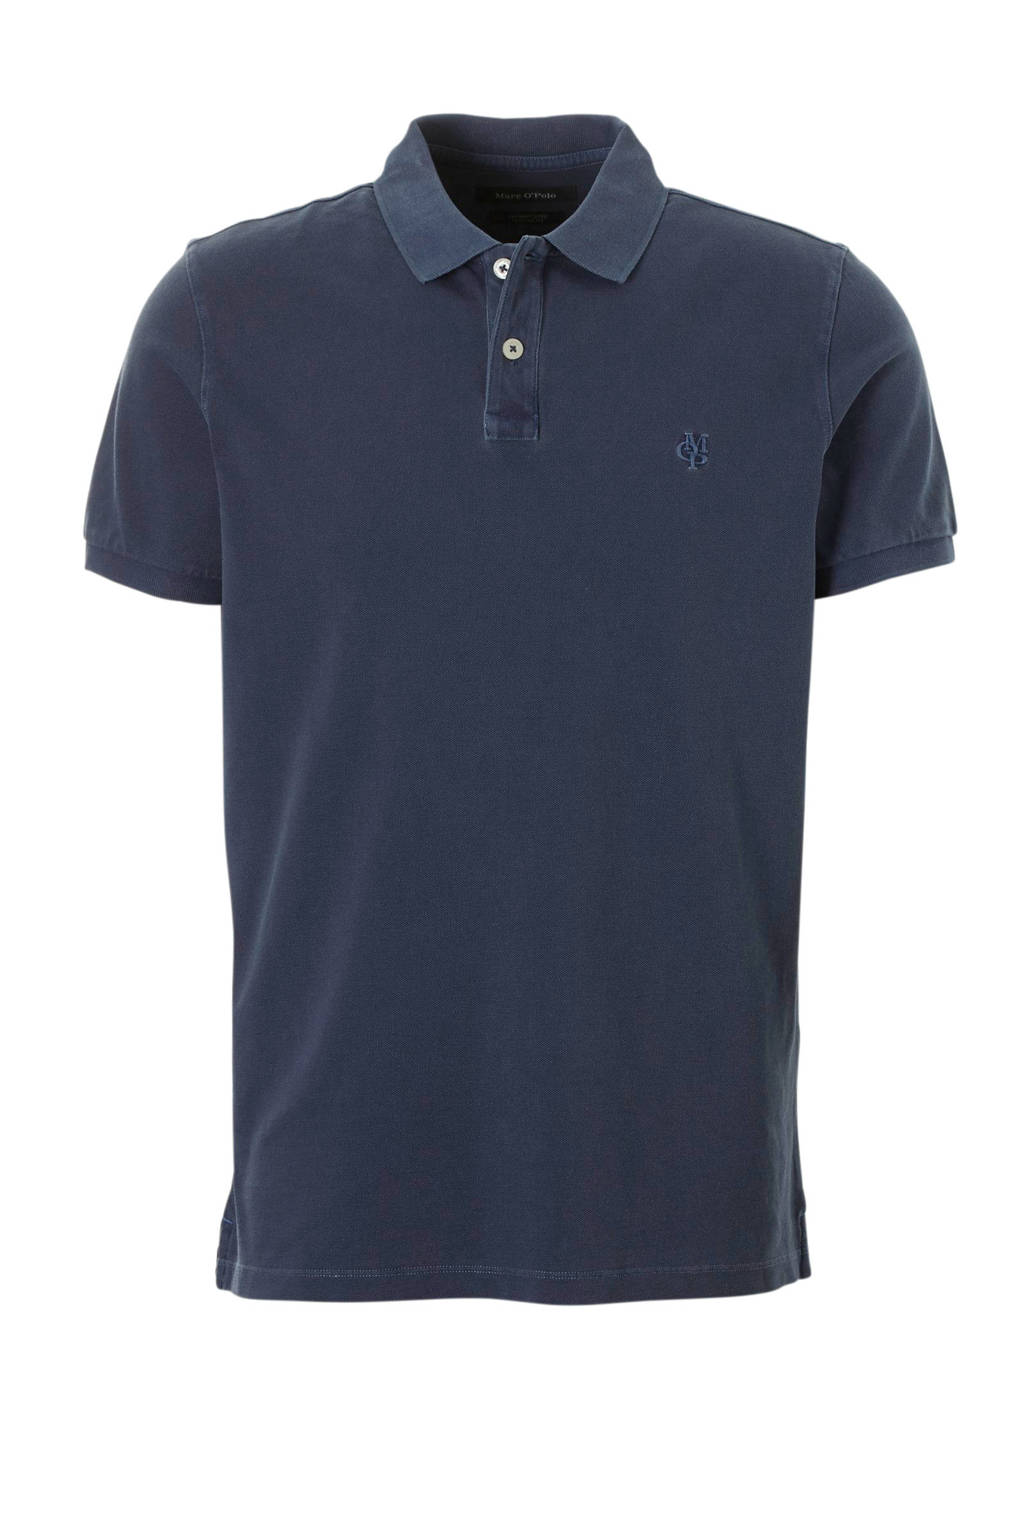 Marc O'Polo regular fit polo donkerblauw, Donkerblauw